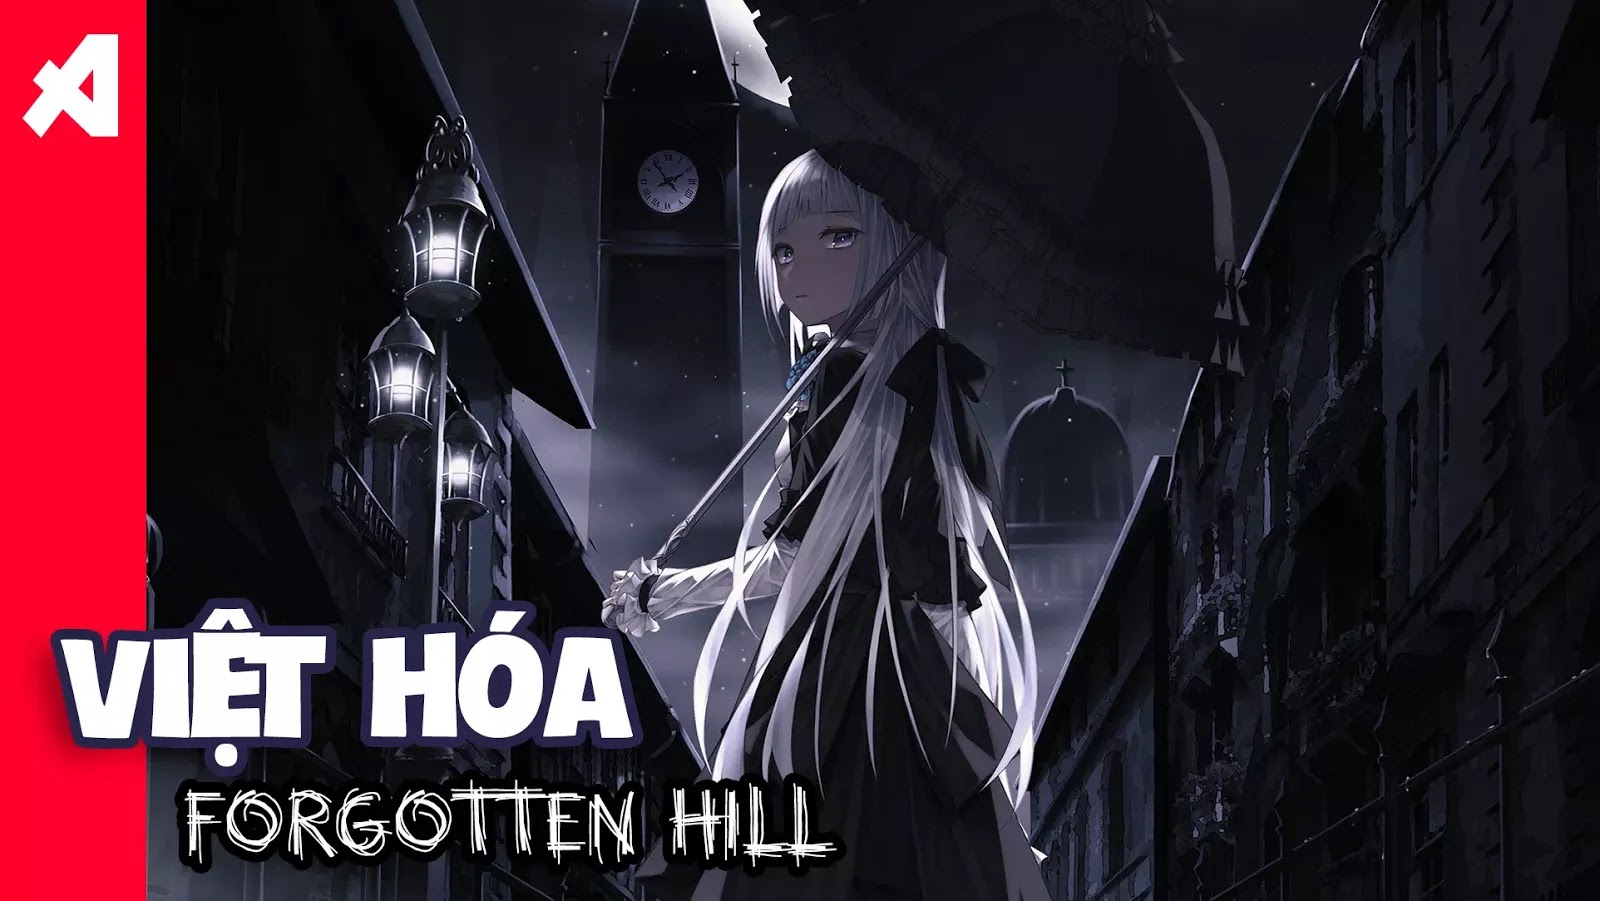 game android Forgotten%2BHill Fall Sugery Mementoes viet hoa aowvn kinh di giai do%2B%25285%2529 - [ HOT ] Game Forgotten Hill - Mementoes - Fall - Surgery Việt Hóa | Android - Kinh dị giải đố tuyệt hay